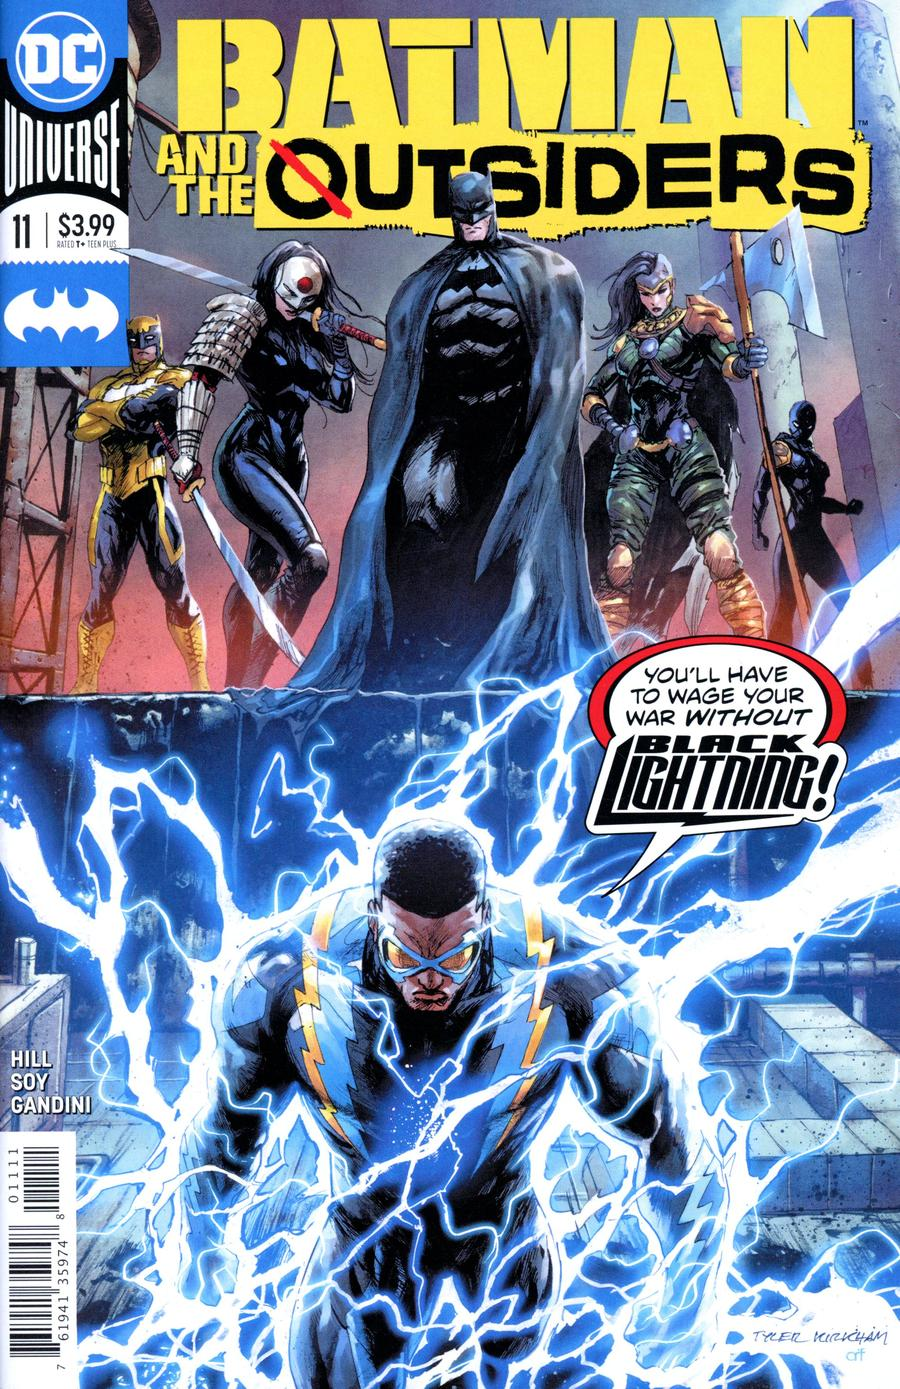 Batman And The Outsiders Vol 3 #11 Cover A Regular Tyler Kirkham Cover